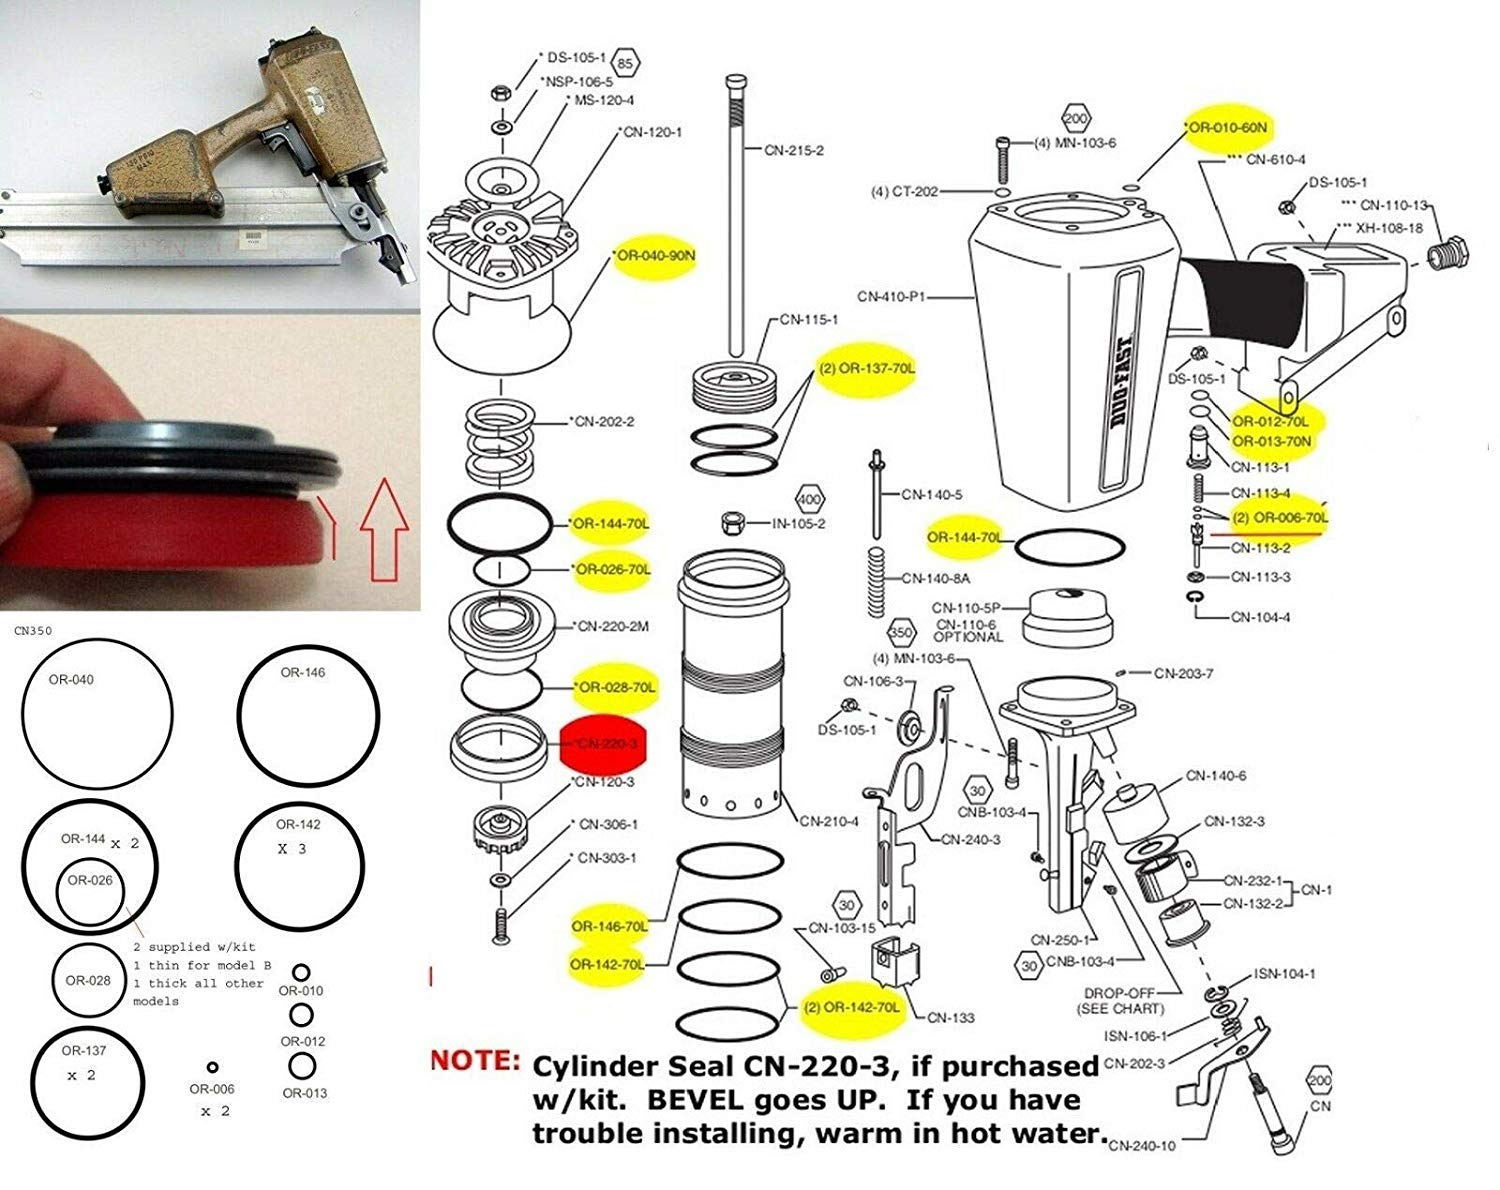 O-Ring Depot Fits and Compatible with Complete O-Ring Kit and Poppet Seal for Duo-Fast CN350 CN325